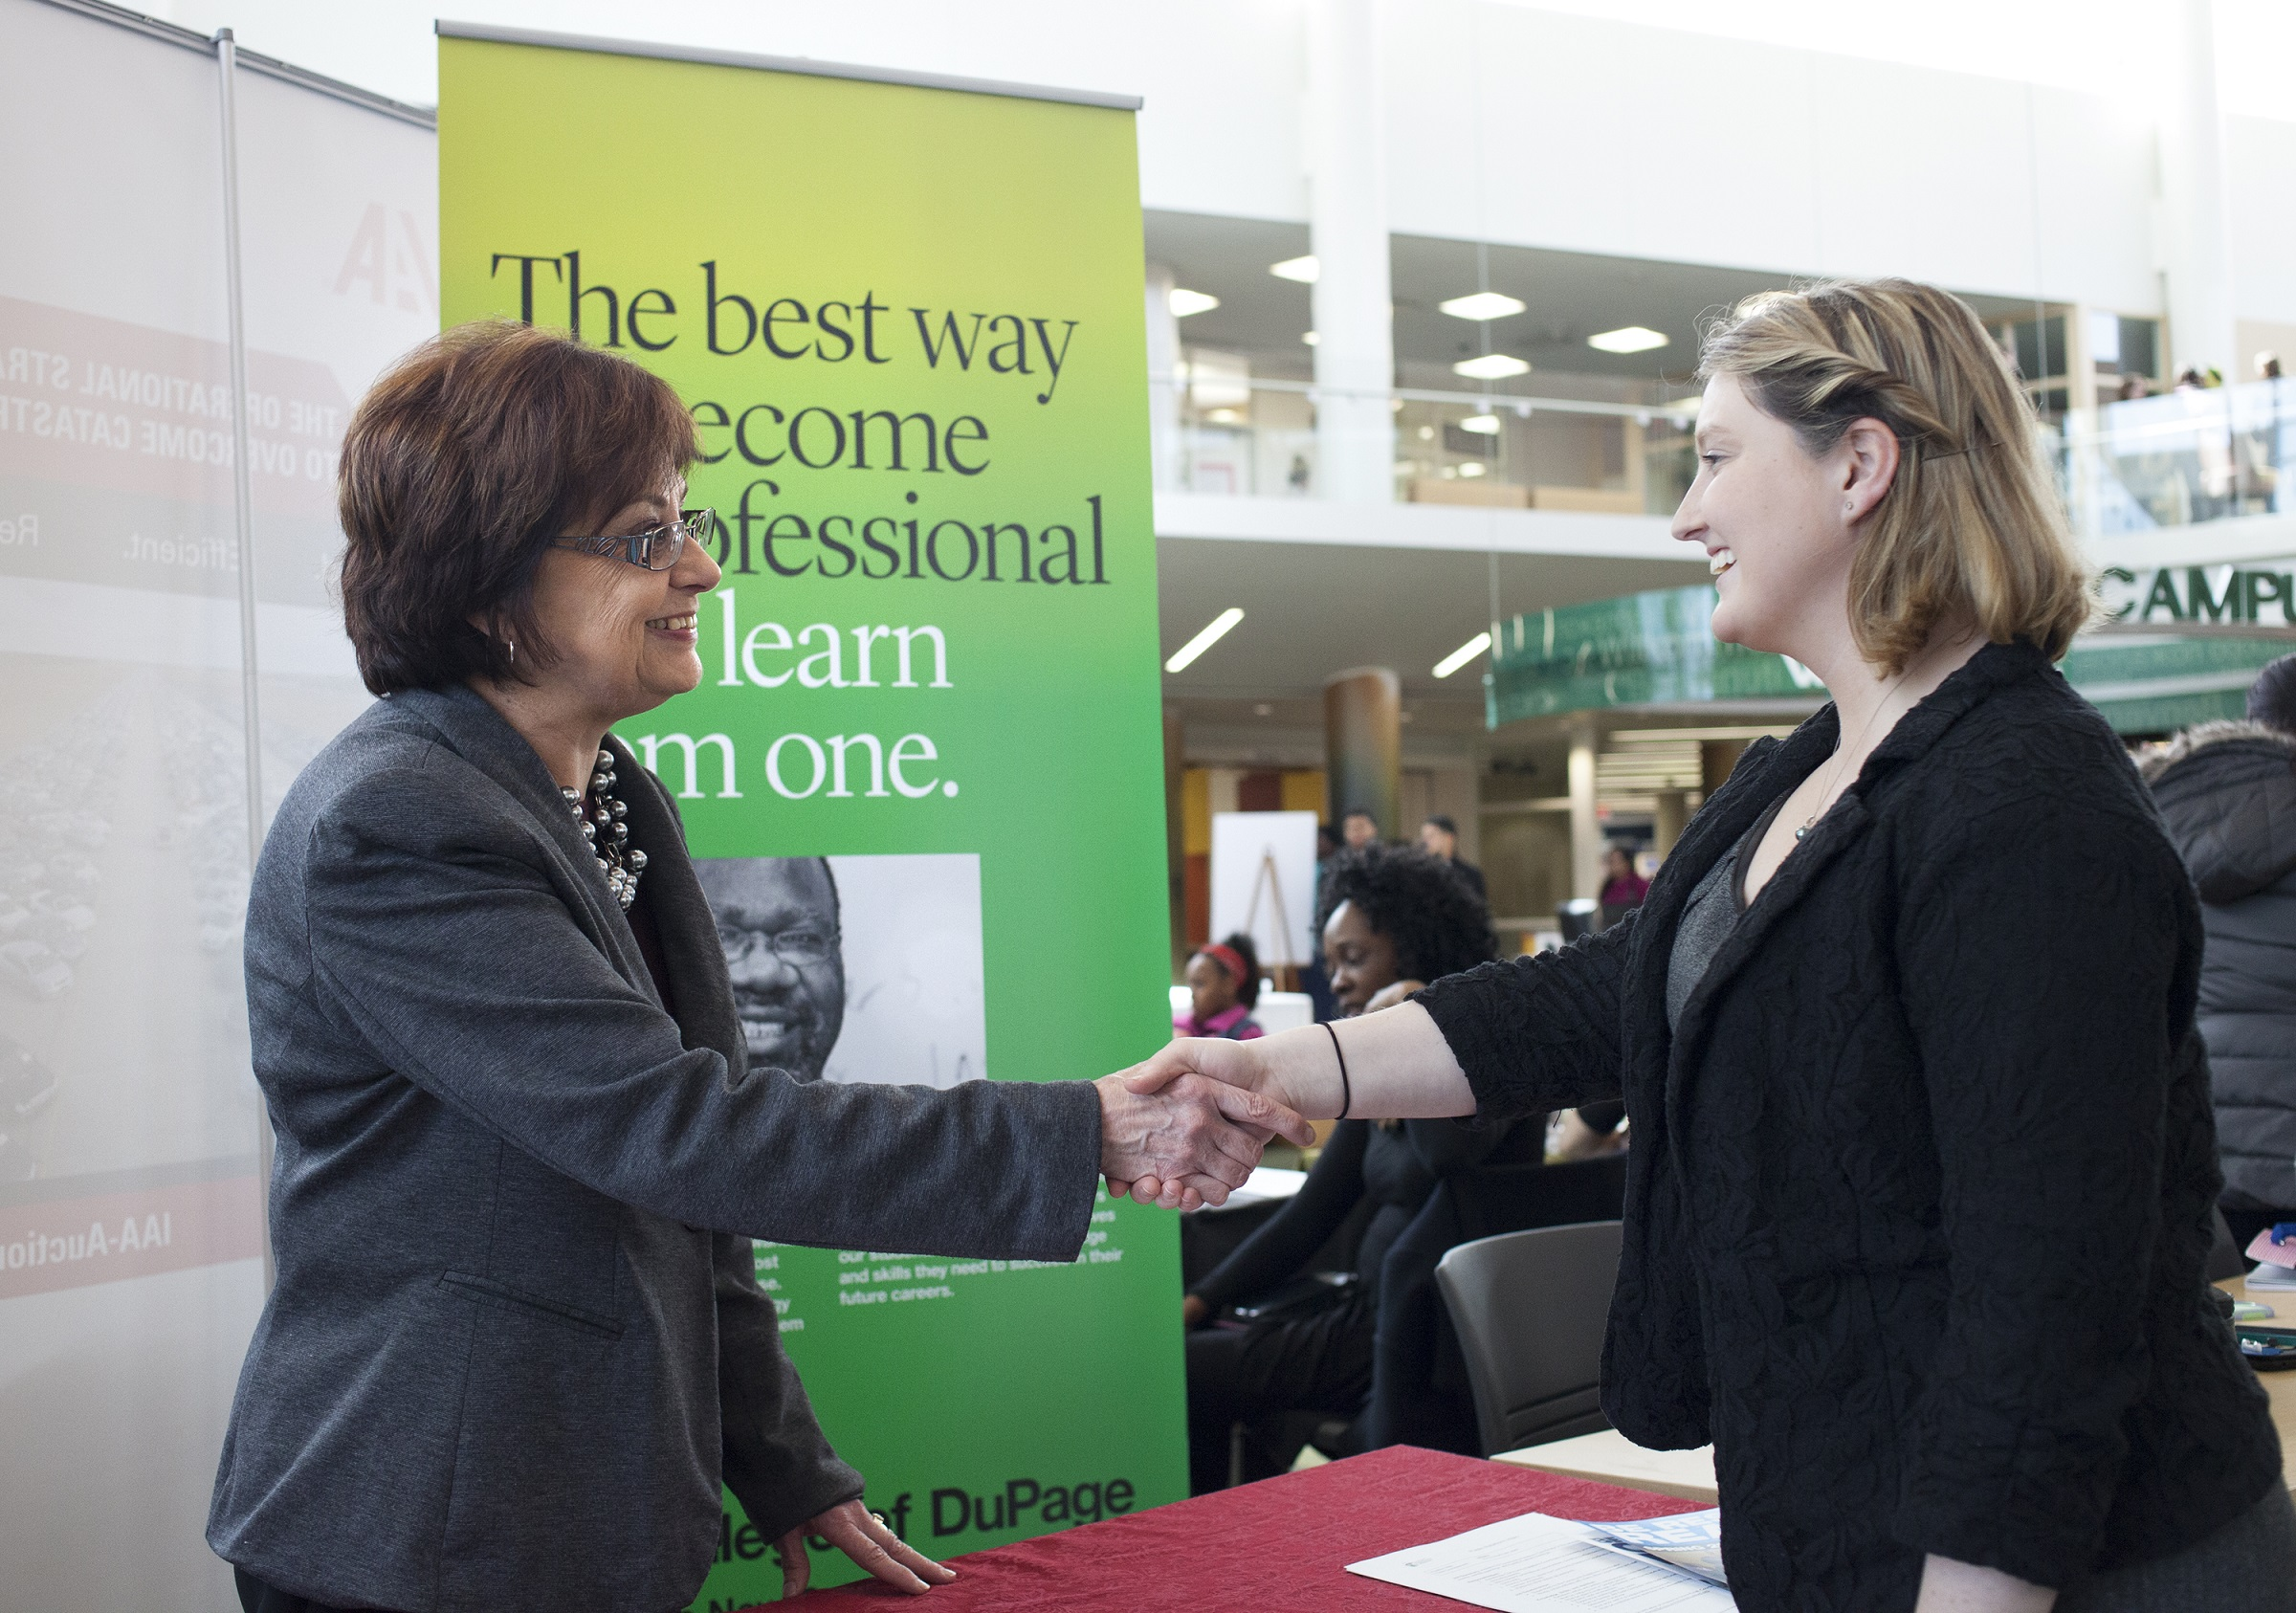 Handshaking at a career fair